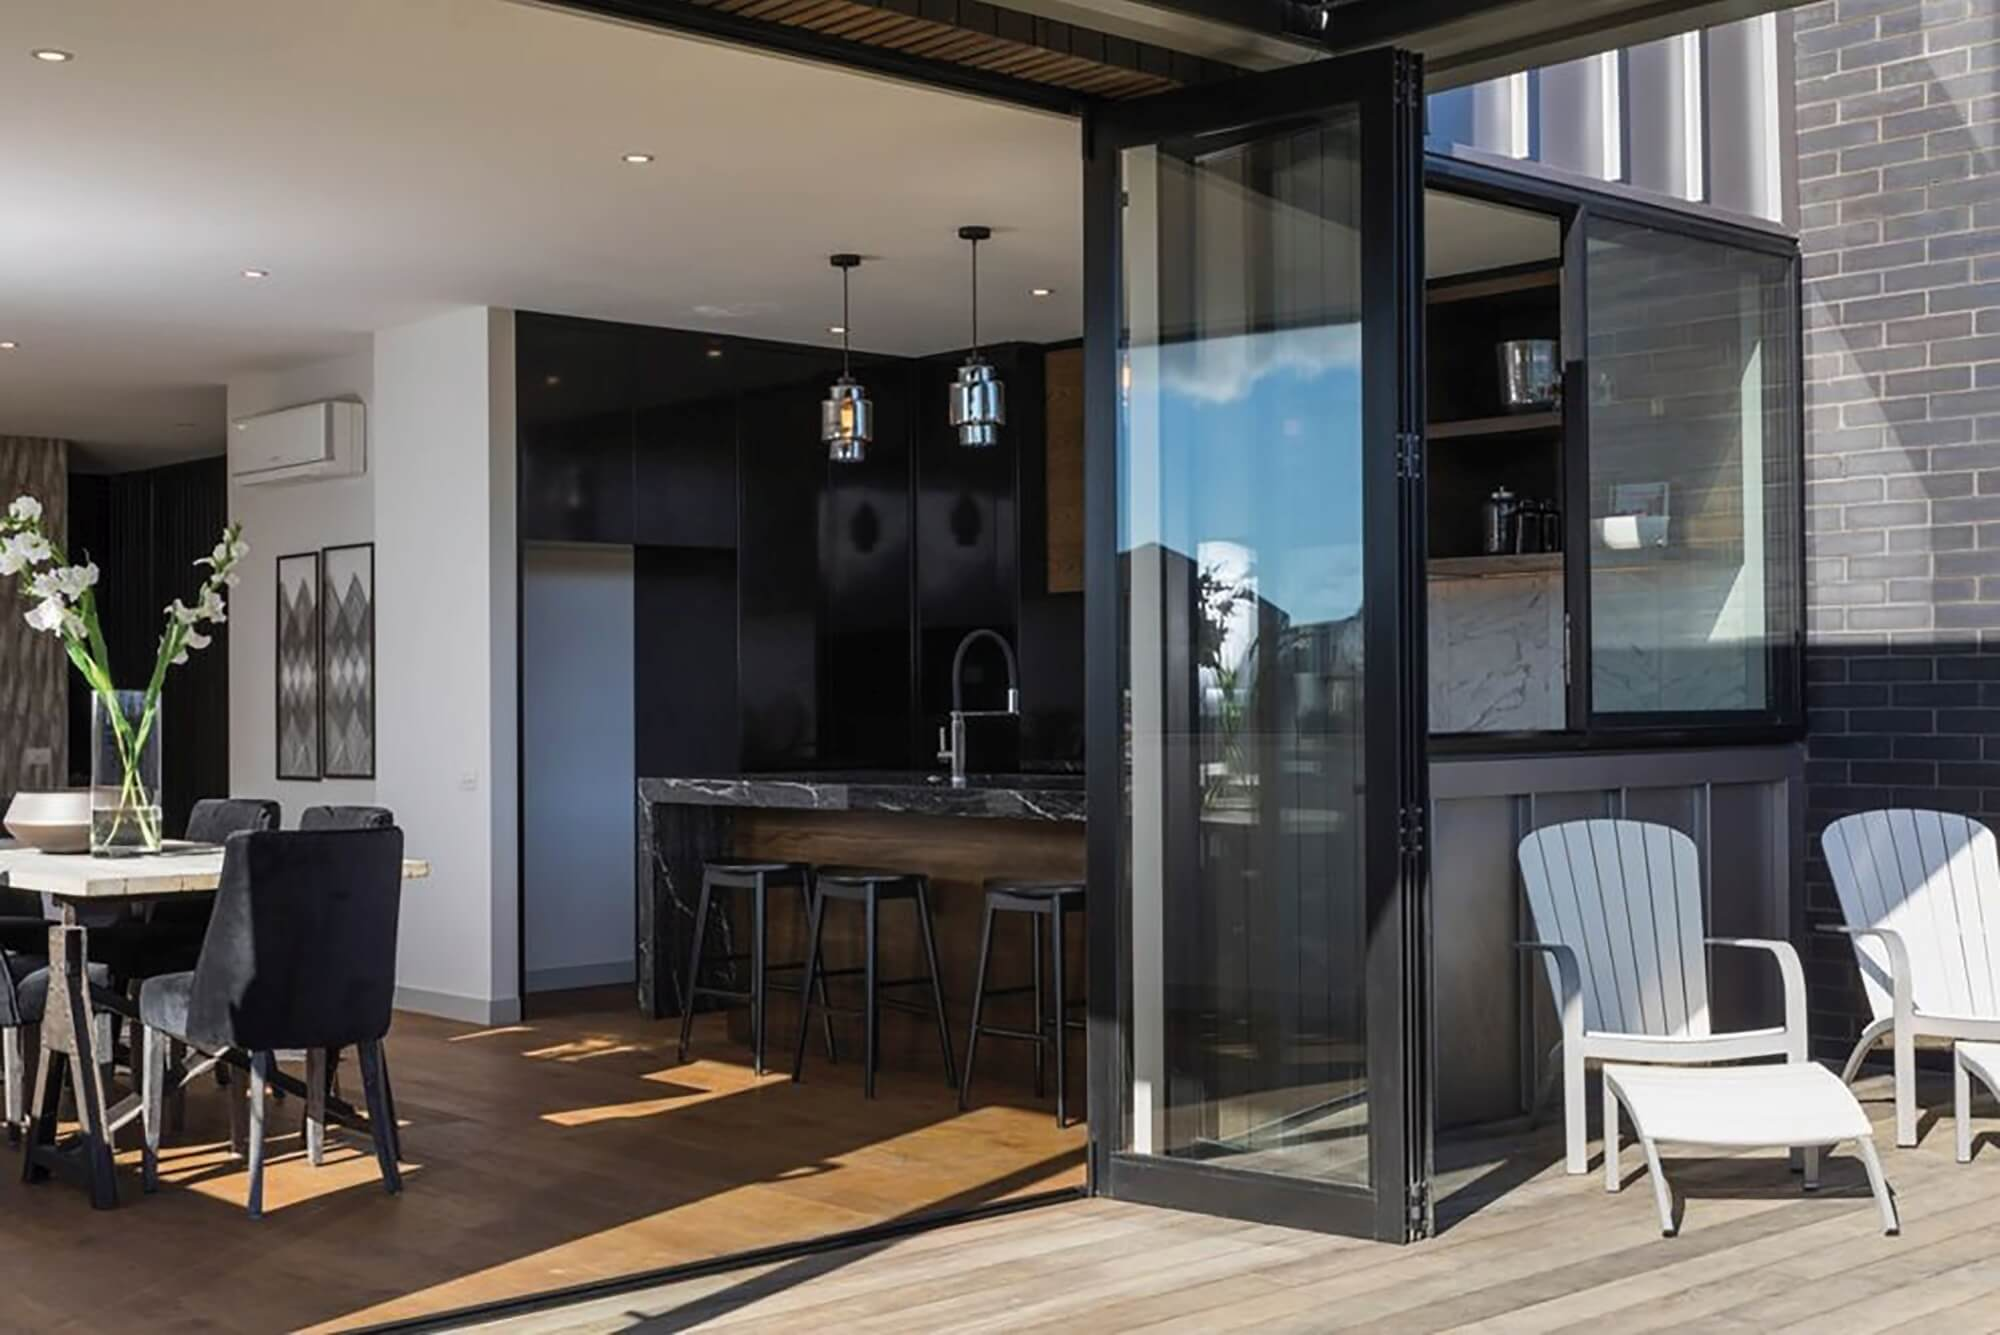 Large glass doors opening from kitchen and dining room to porch.